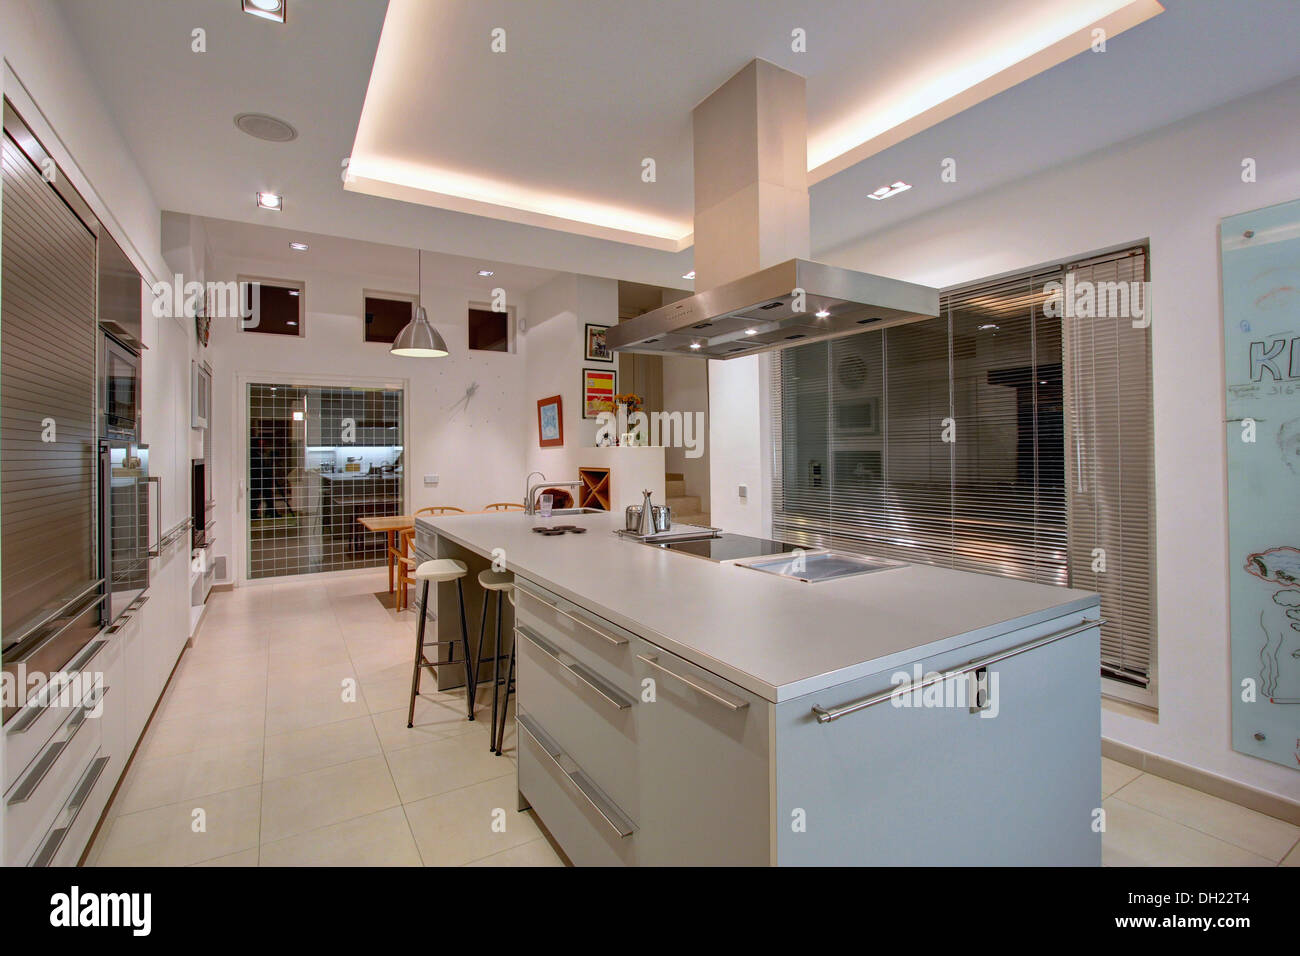 modern fluorescent kitchen lighting. Kitchen Fluorescent Lighting. Extractor Above Hob In Island Unit Large Modern Spanish Apartment With Lighting E